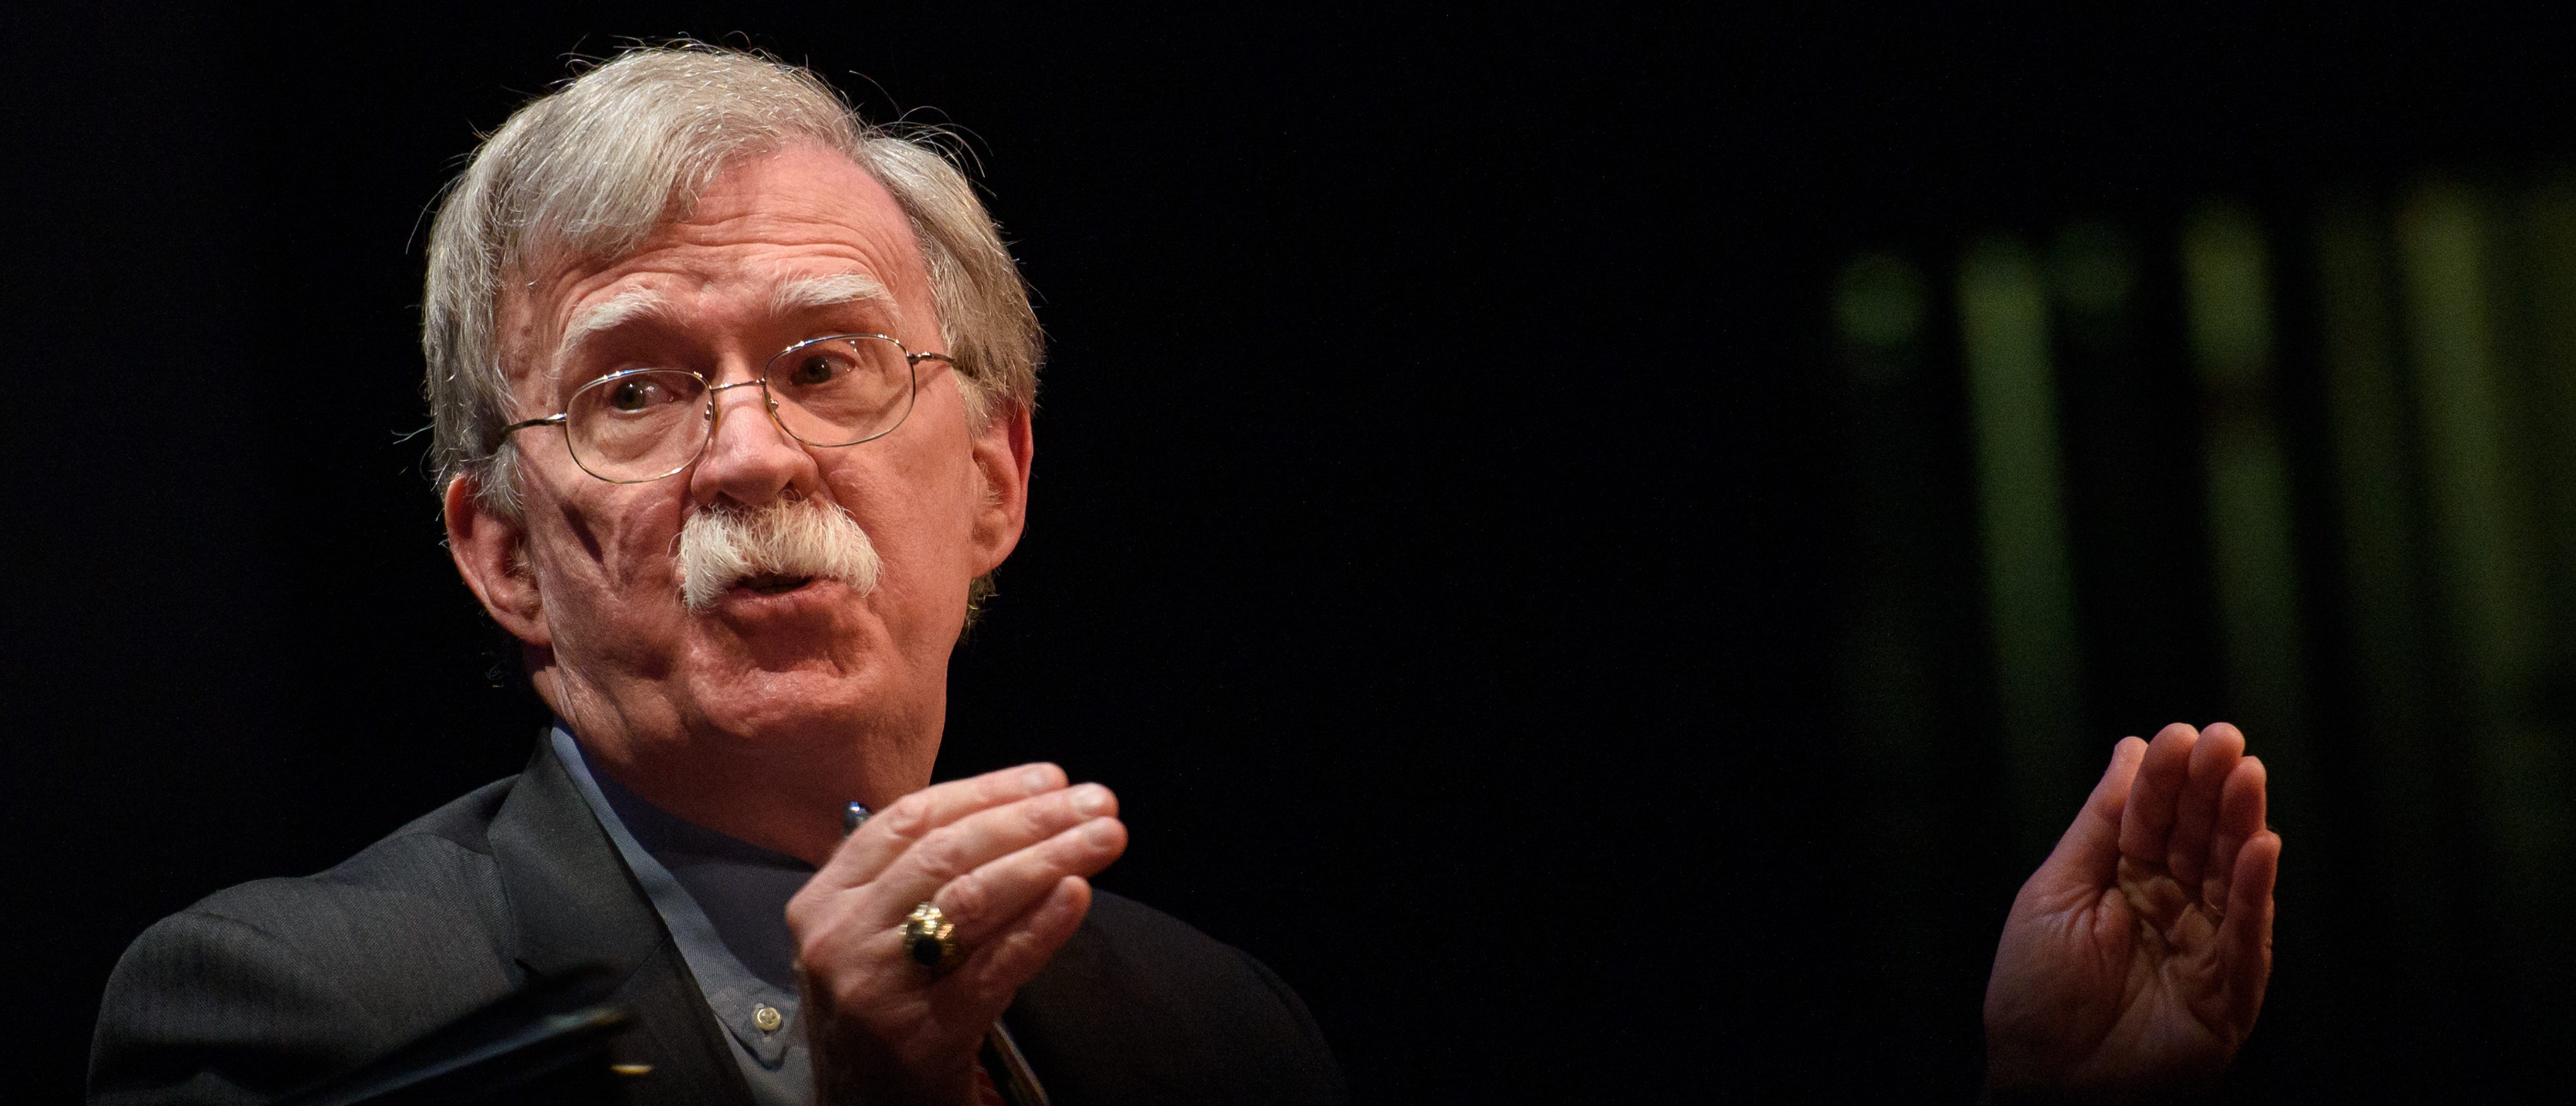 'That's The Position I'm Gonna Take': Bolton Refuses To Say Whether He Briefed Trump On Russia Bounty Intel